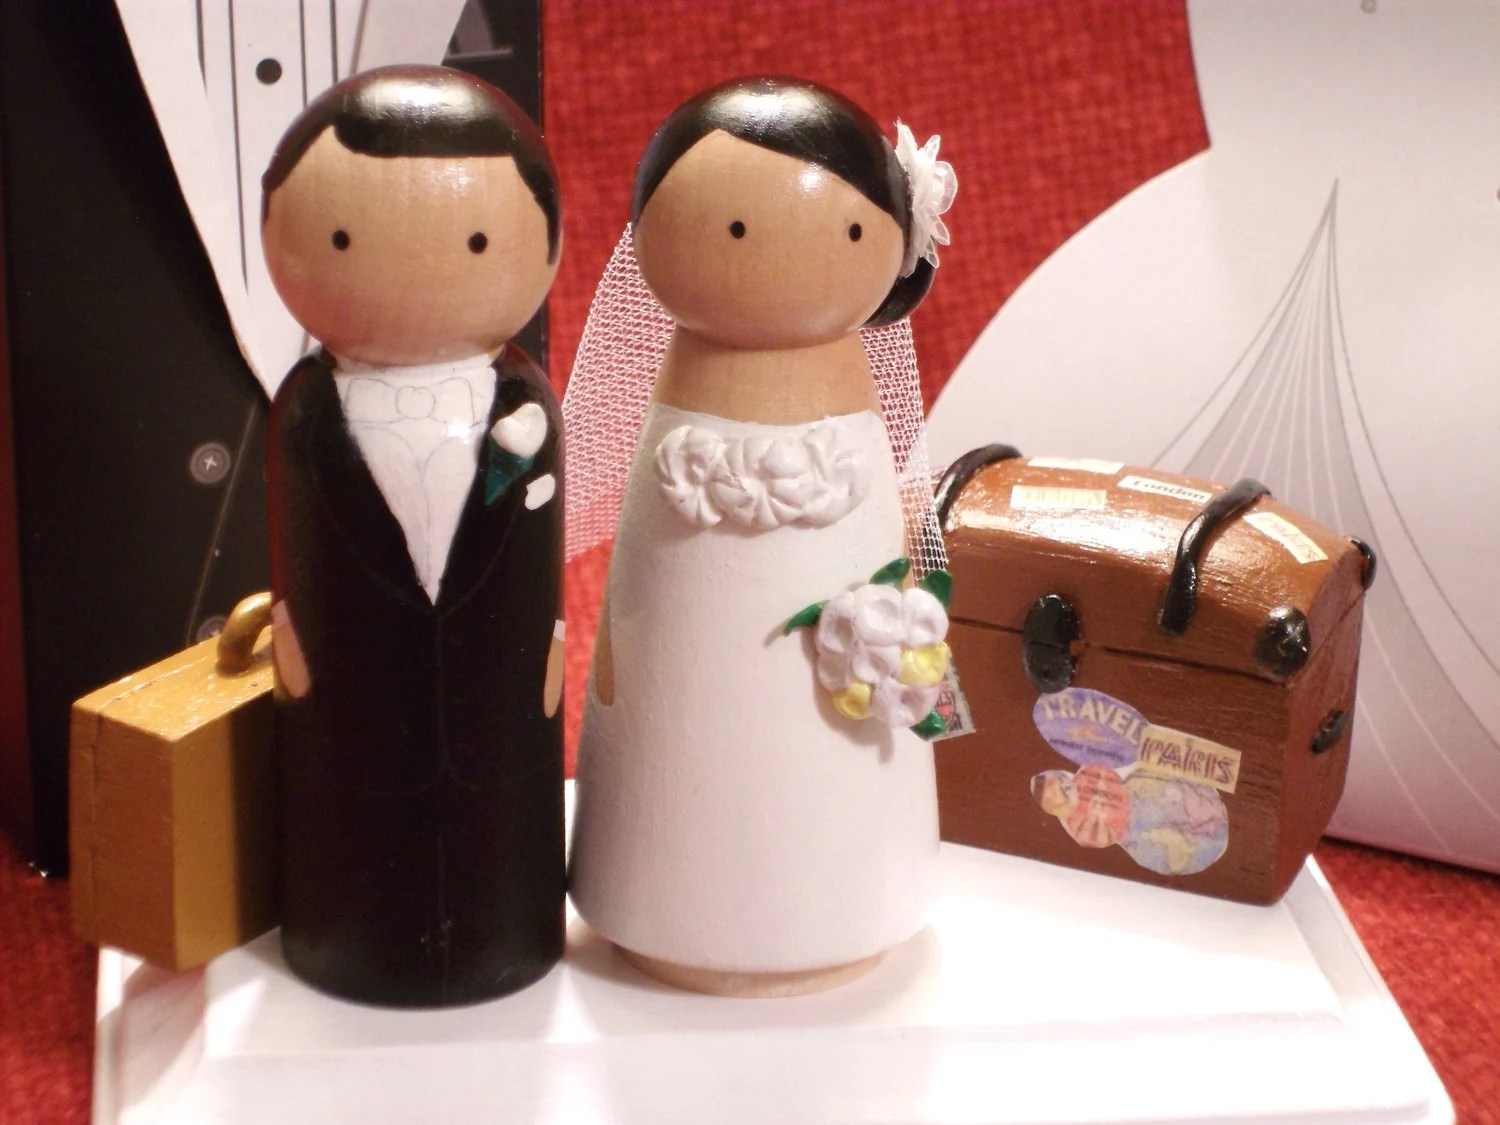 Custom Cake Topper - Personalized Wood Doll Topper -Vintage Travel Theme---3-D Accents